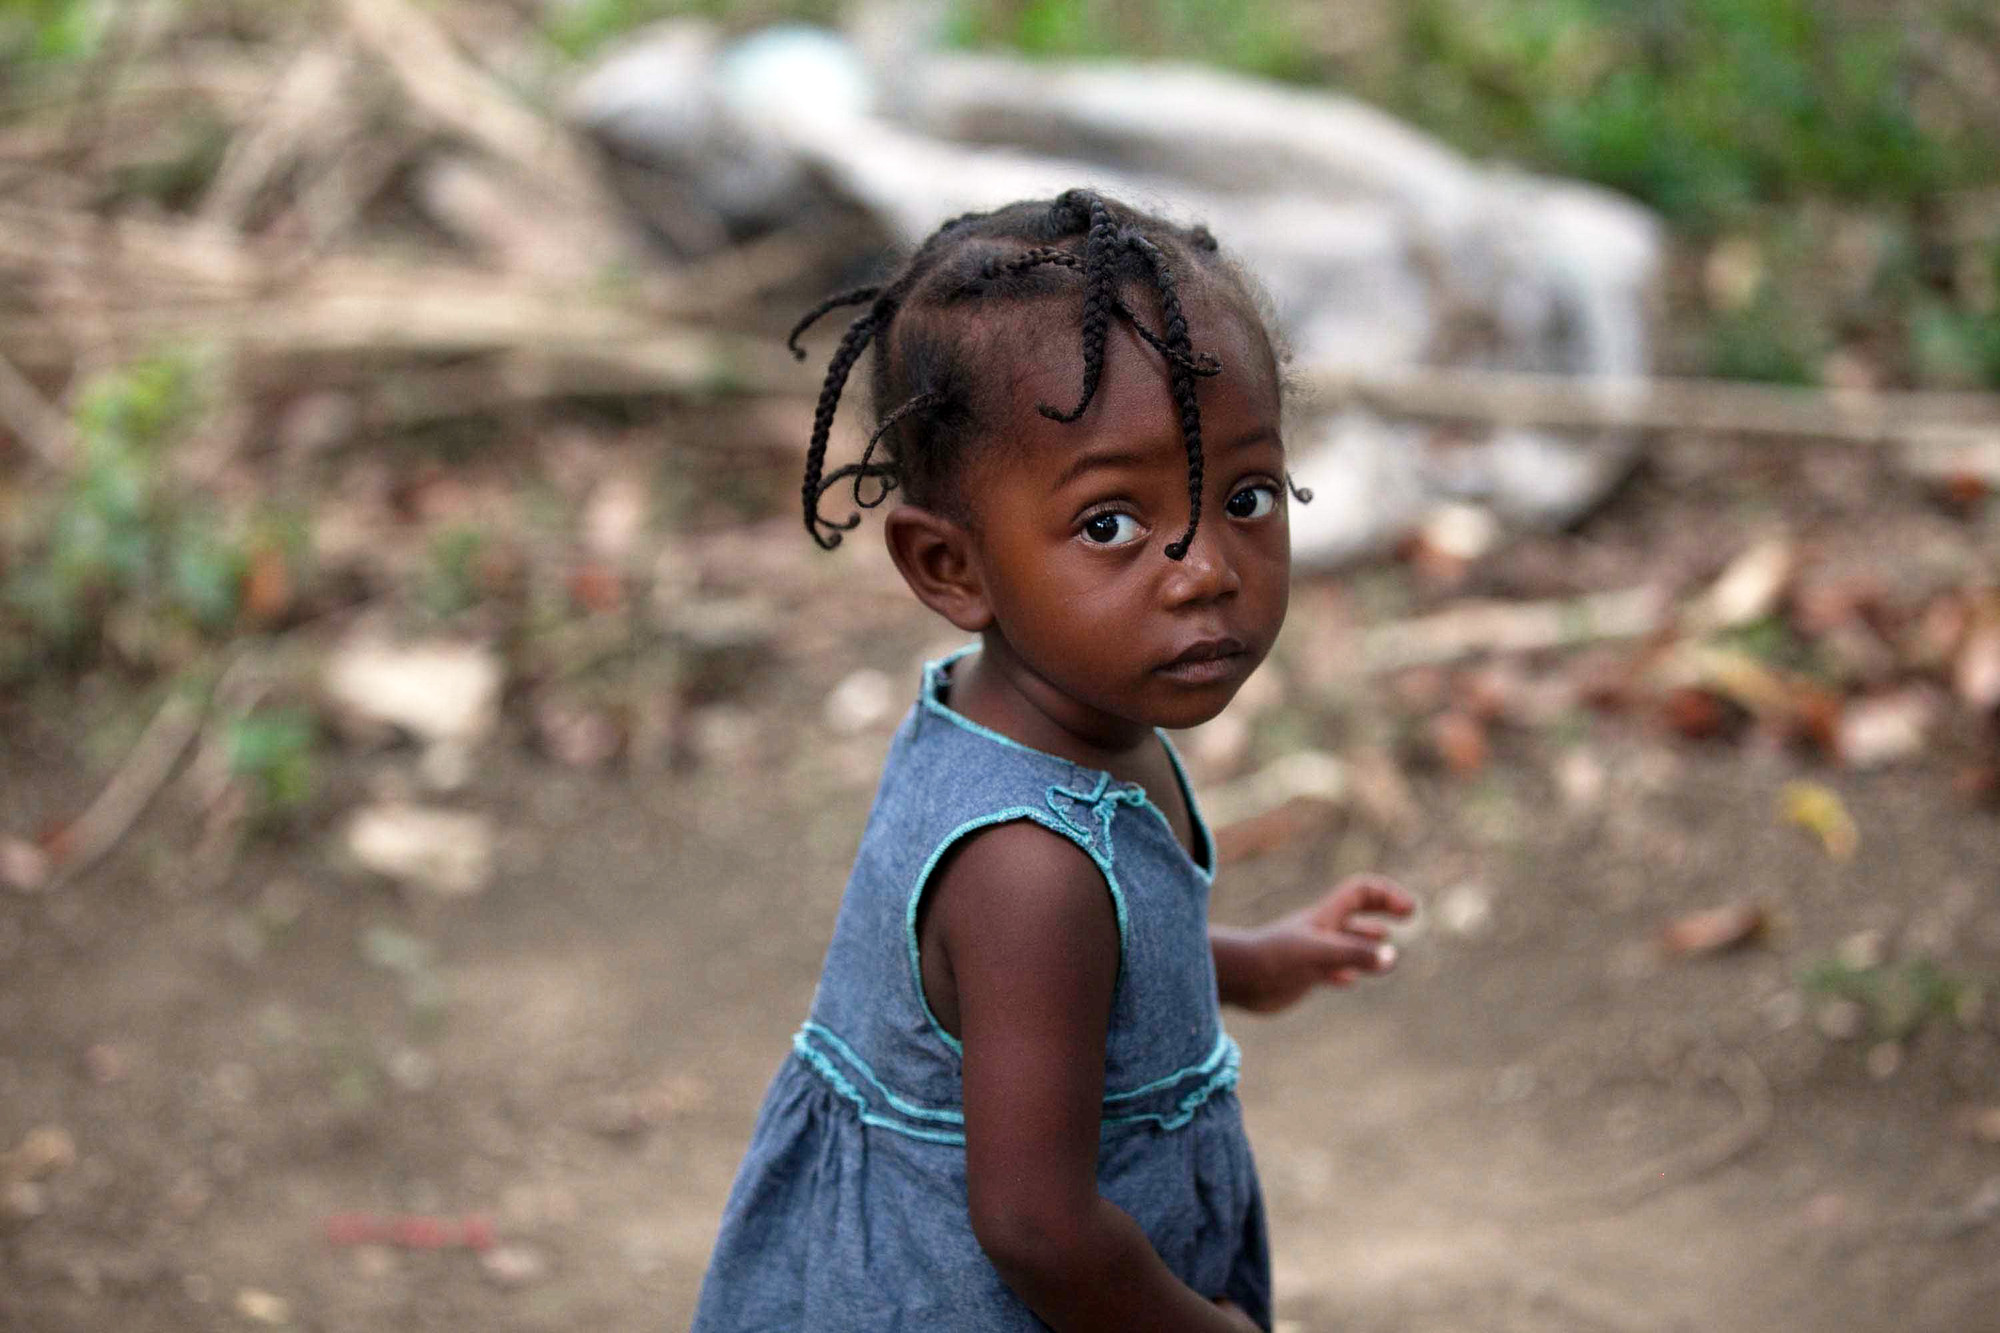 Sponsor A Child  Children's Rights & Disaster Relief Charity  Plan  International Uk